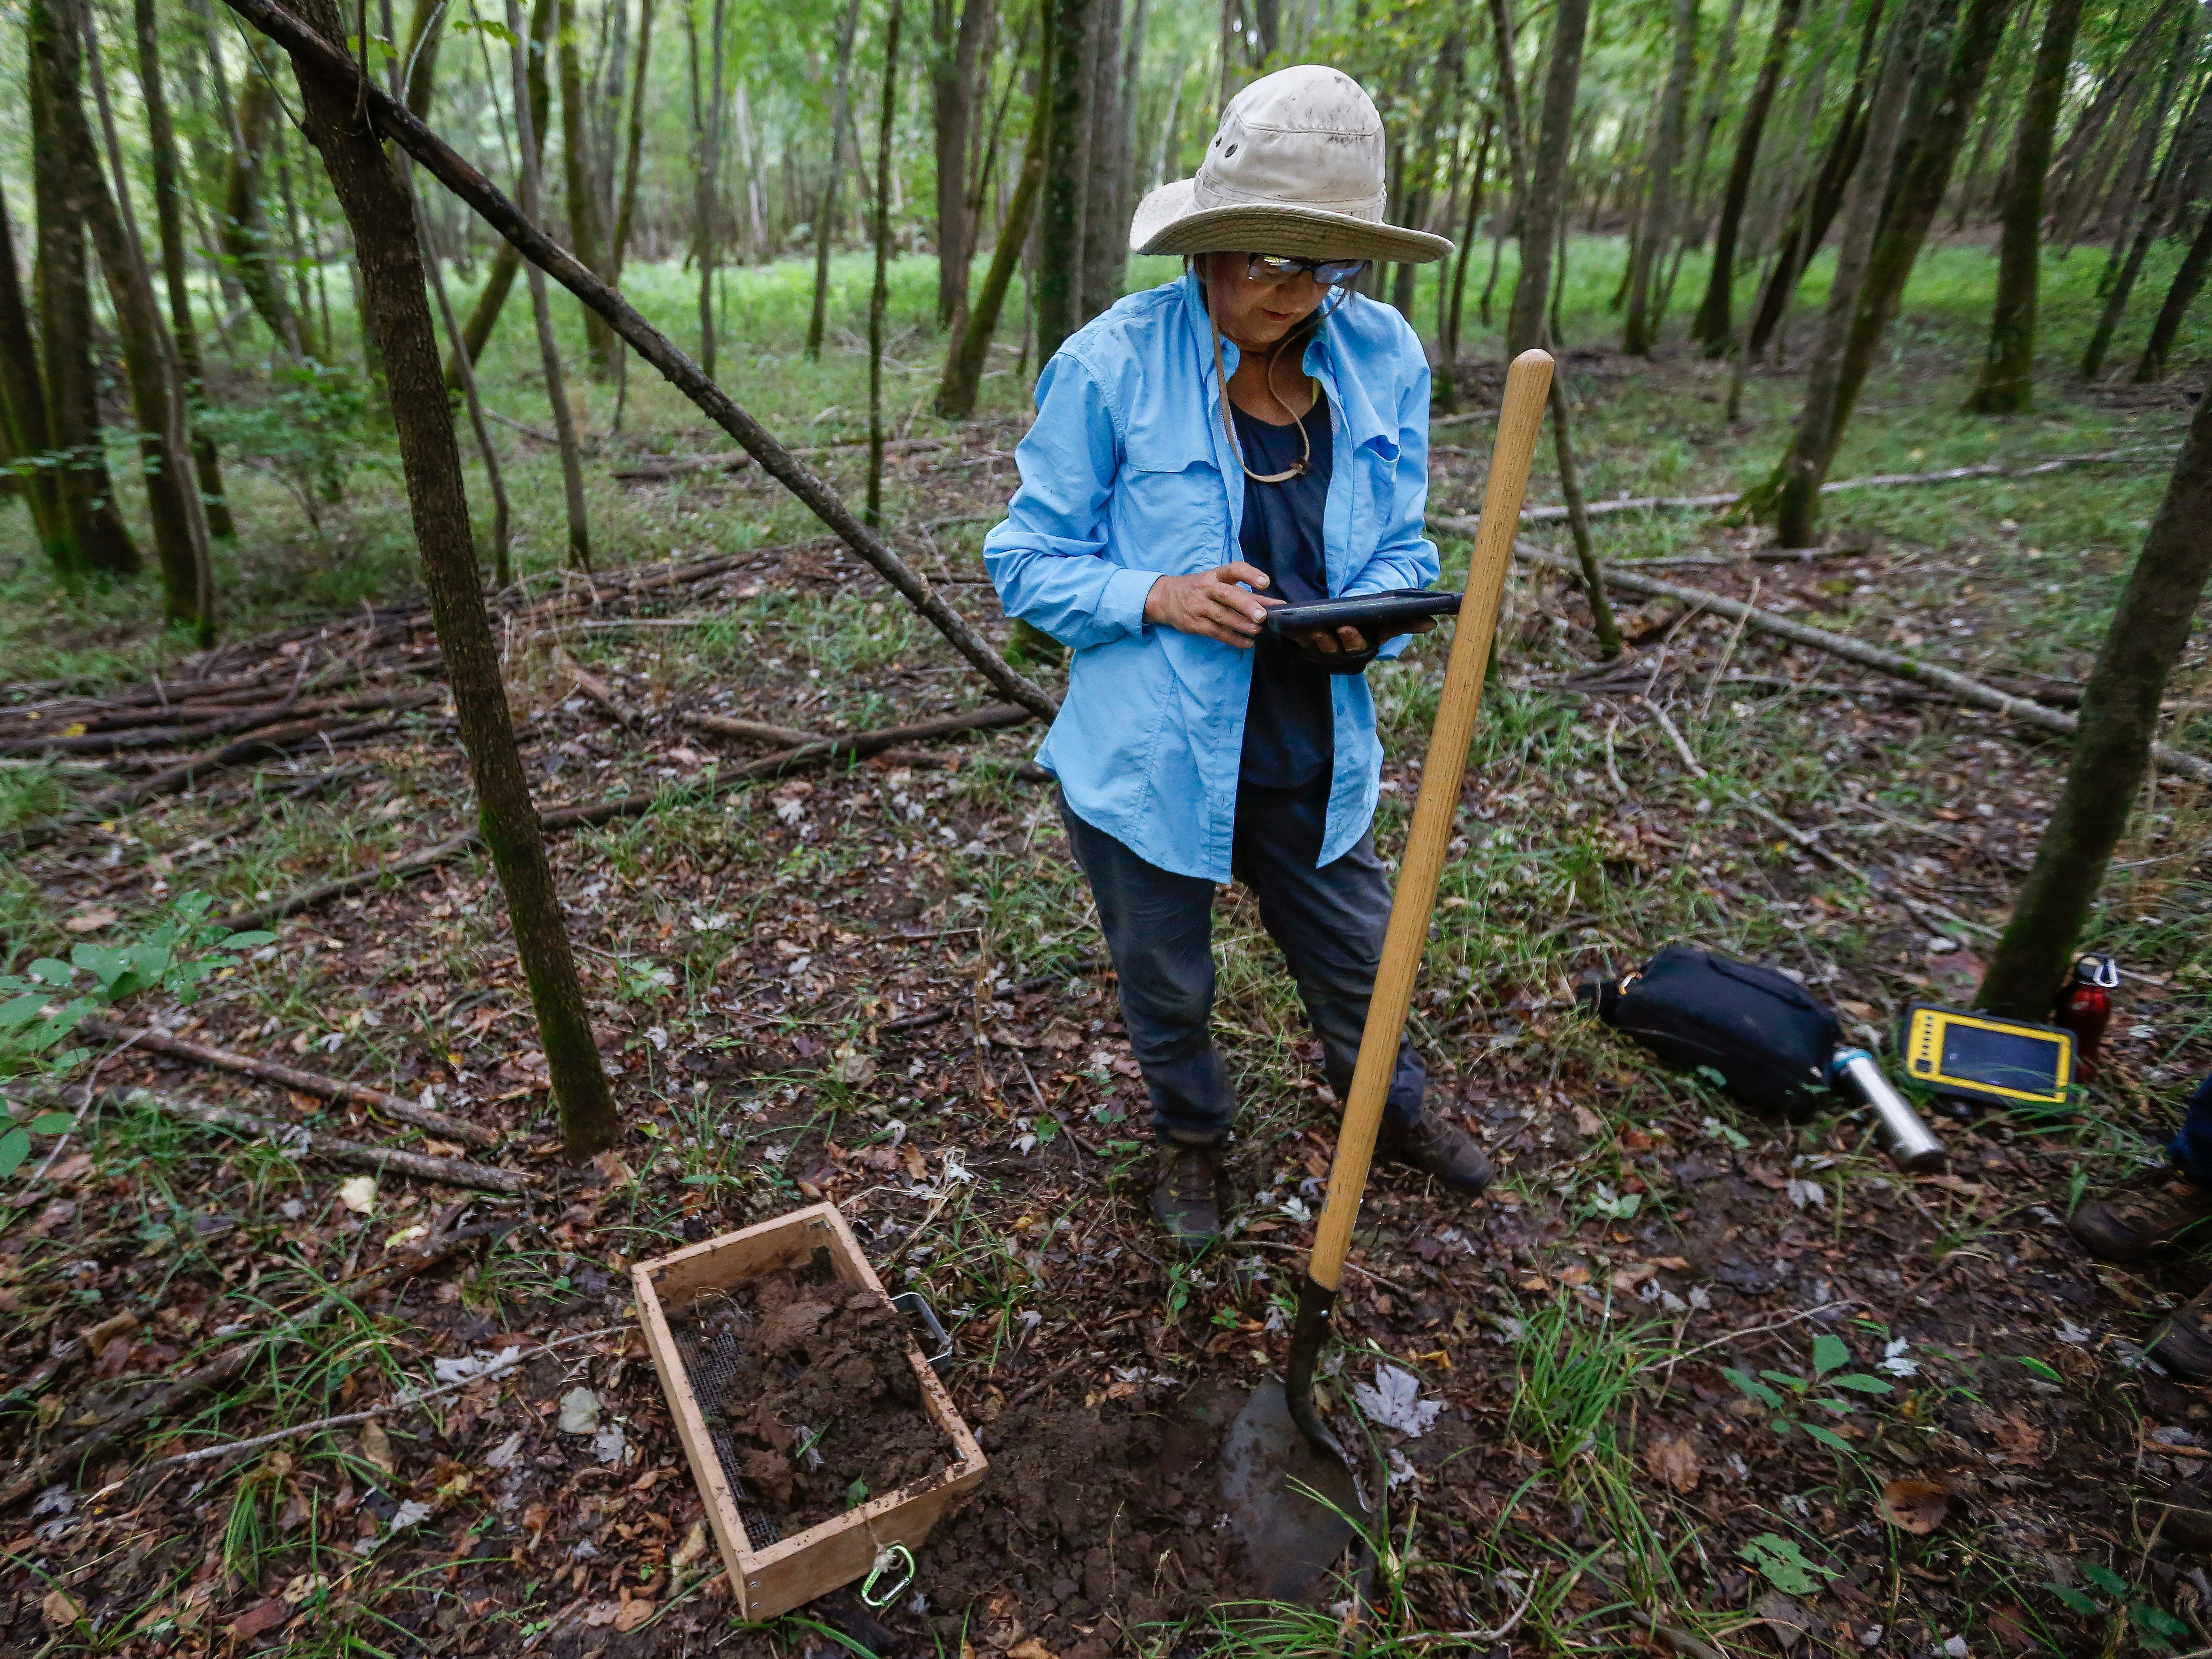 Survey team leader Robin Jorcke notes the GPS coordinates of a hole she dug at a survey site along Lake Taneycomo on Thursday, Aug. 30, 2018.